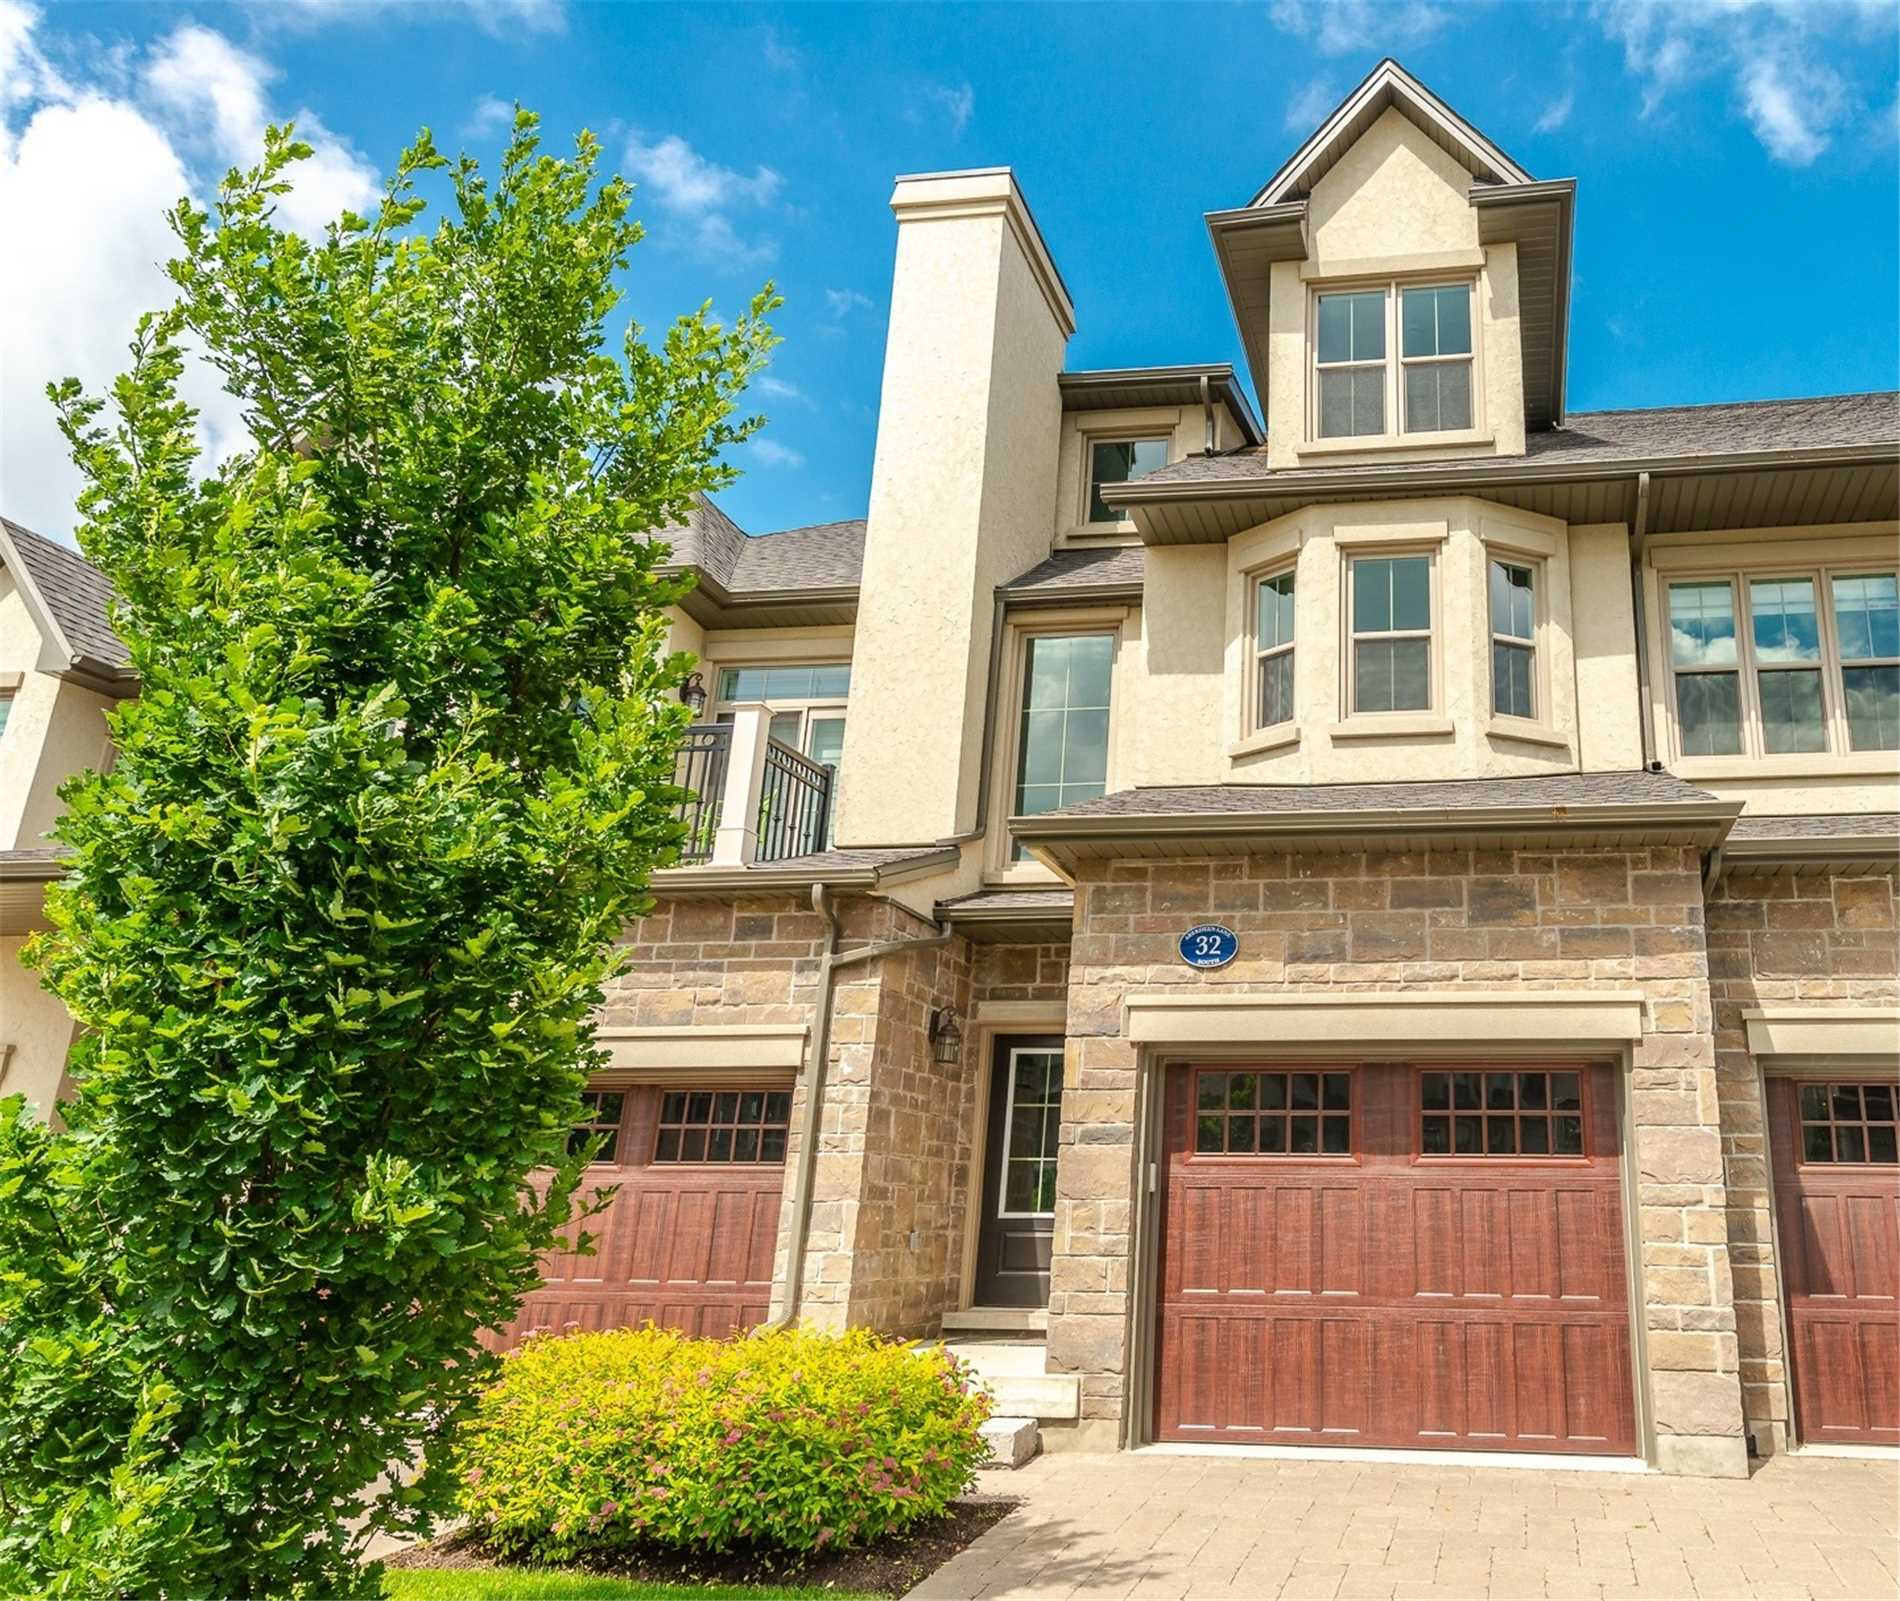 pictures of 32 Aberdeen Lane S, Niagara-on-the-Lake L0S1J0